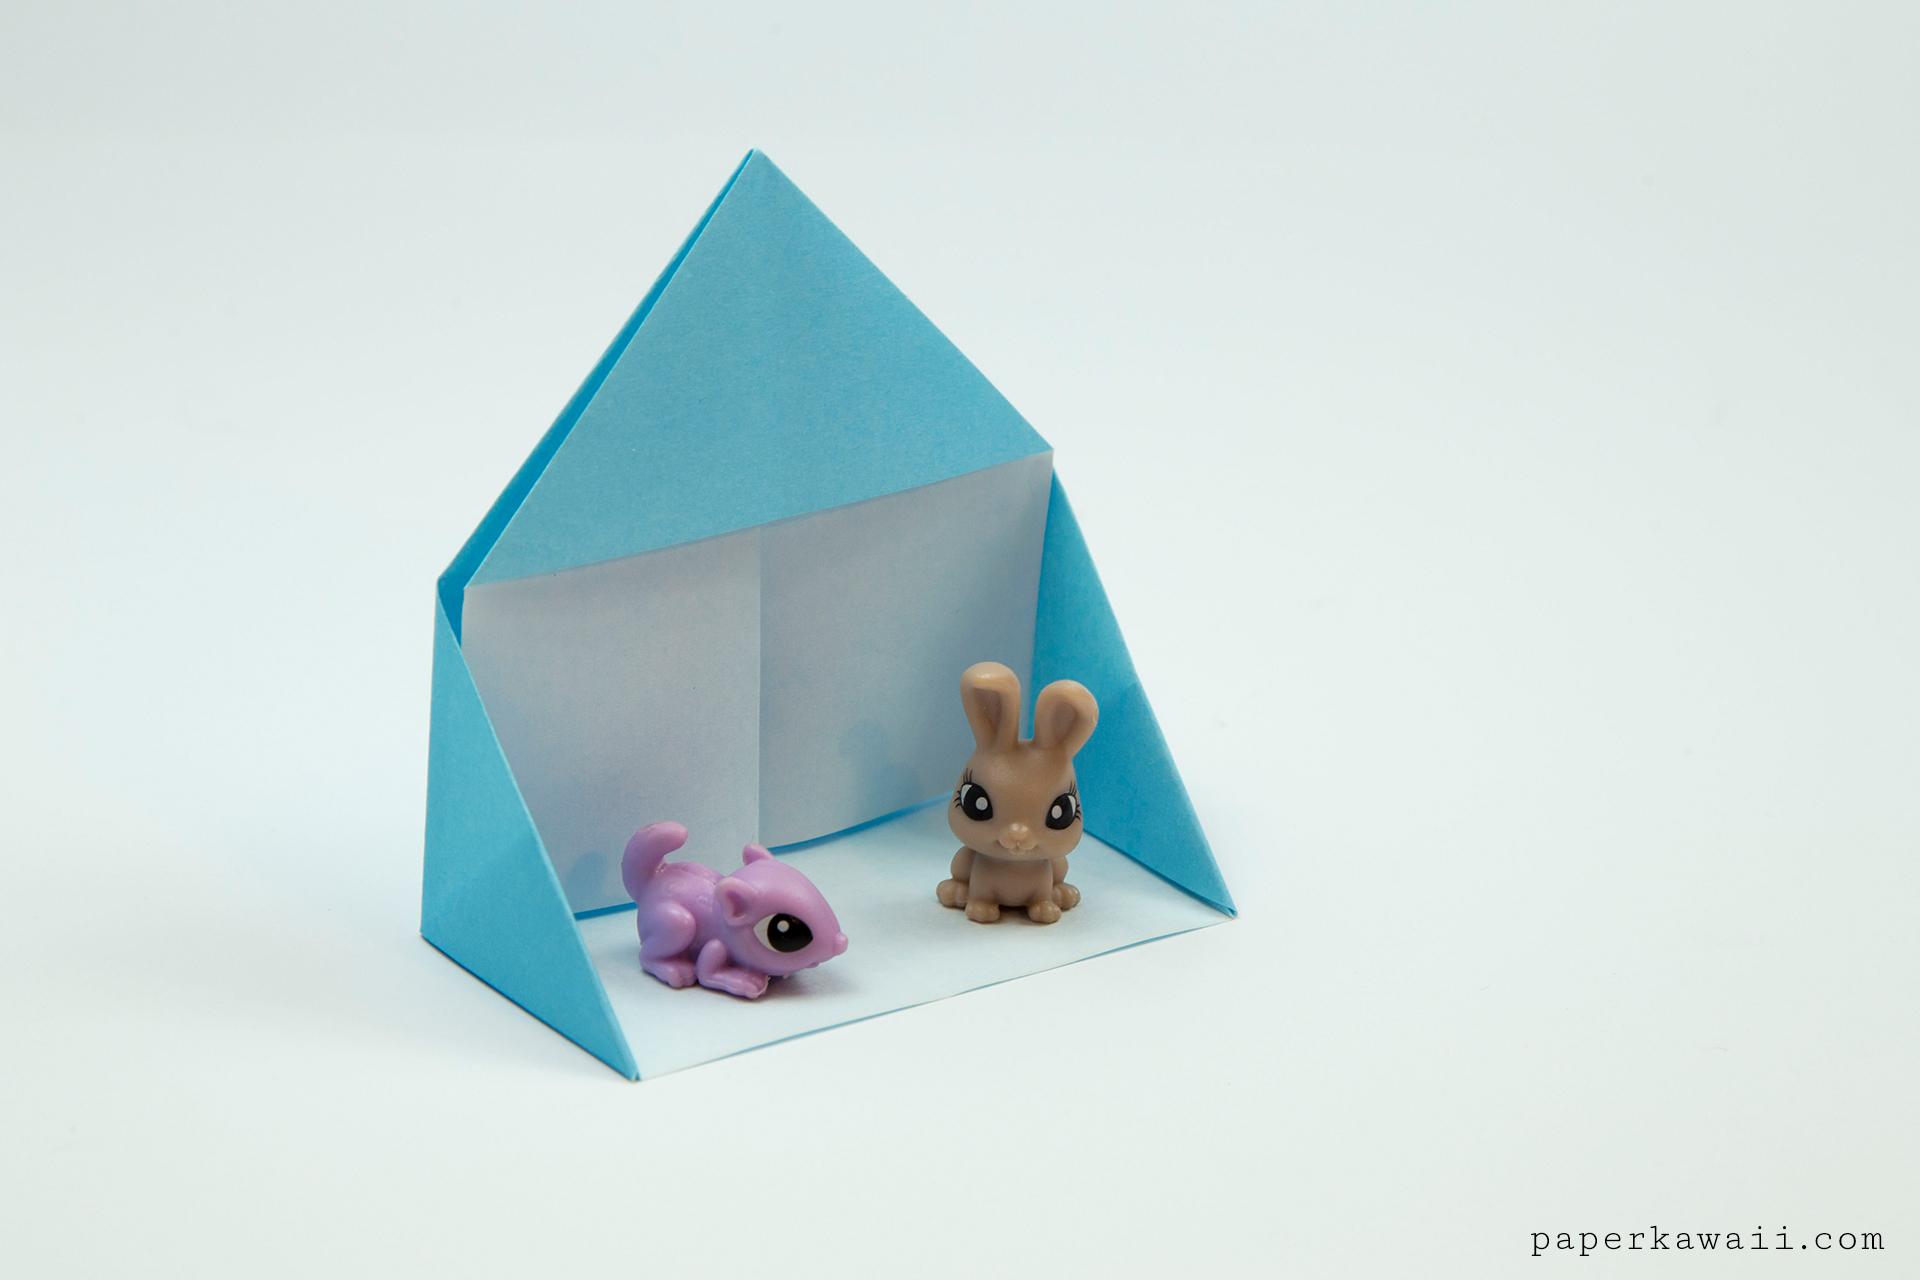 Easy Origami Dollhouse Tutorial - DIY Paper House! & Easy Origami Dollhouse Tutorial - DIY Paper House! - Paper Kawaii